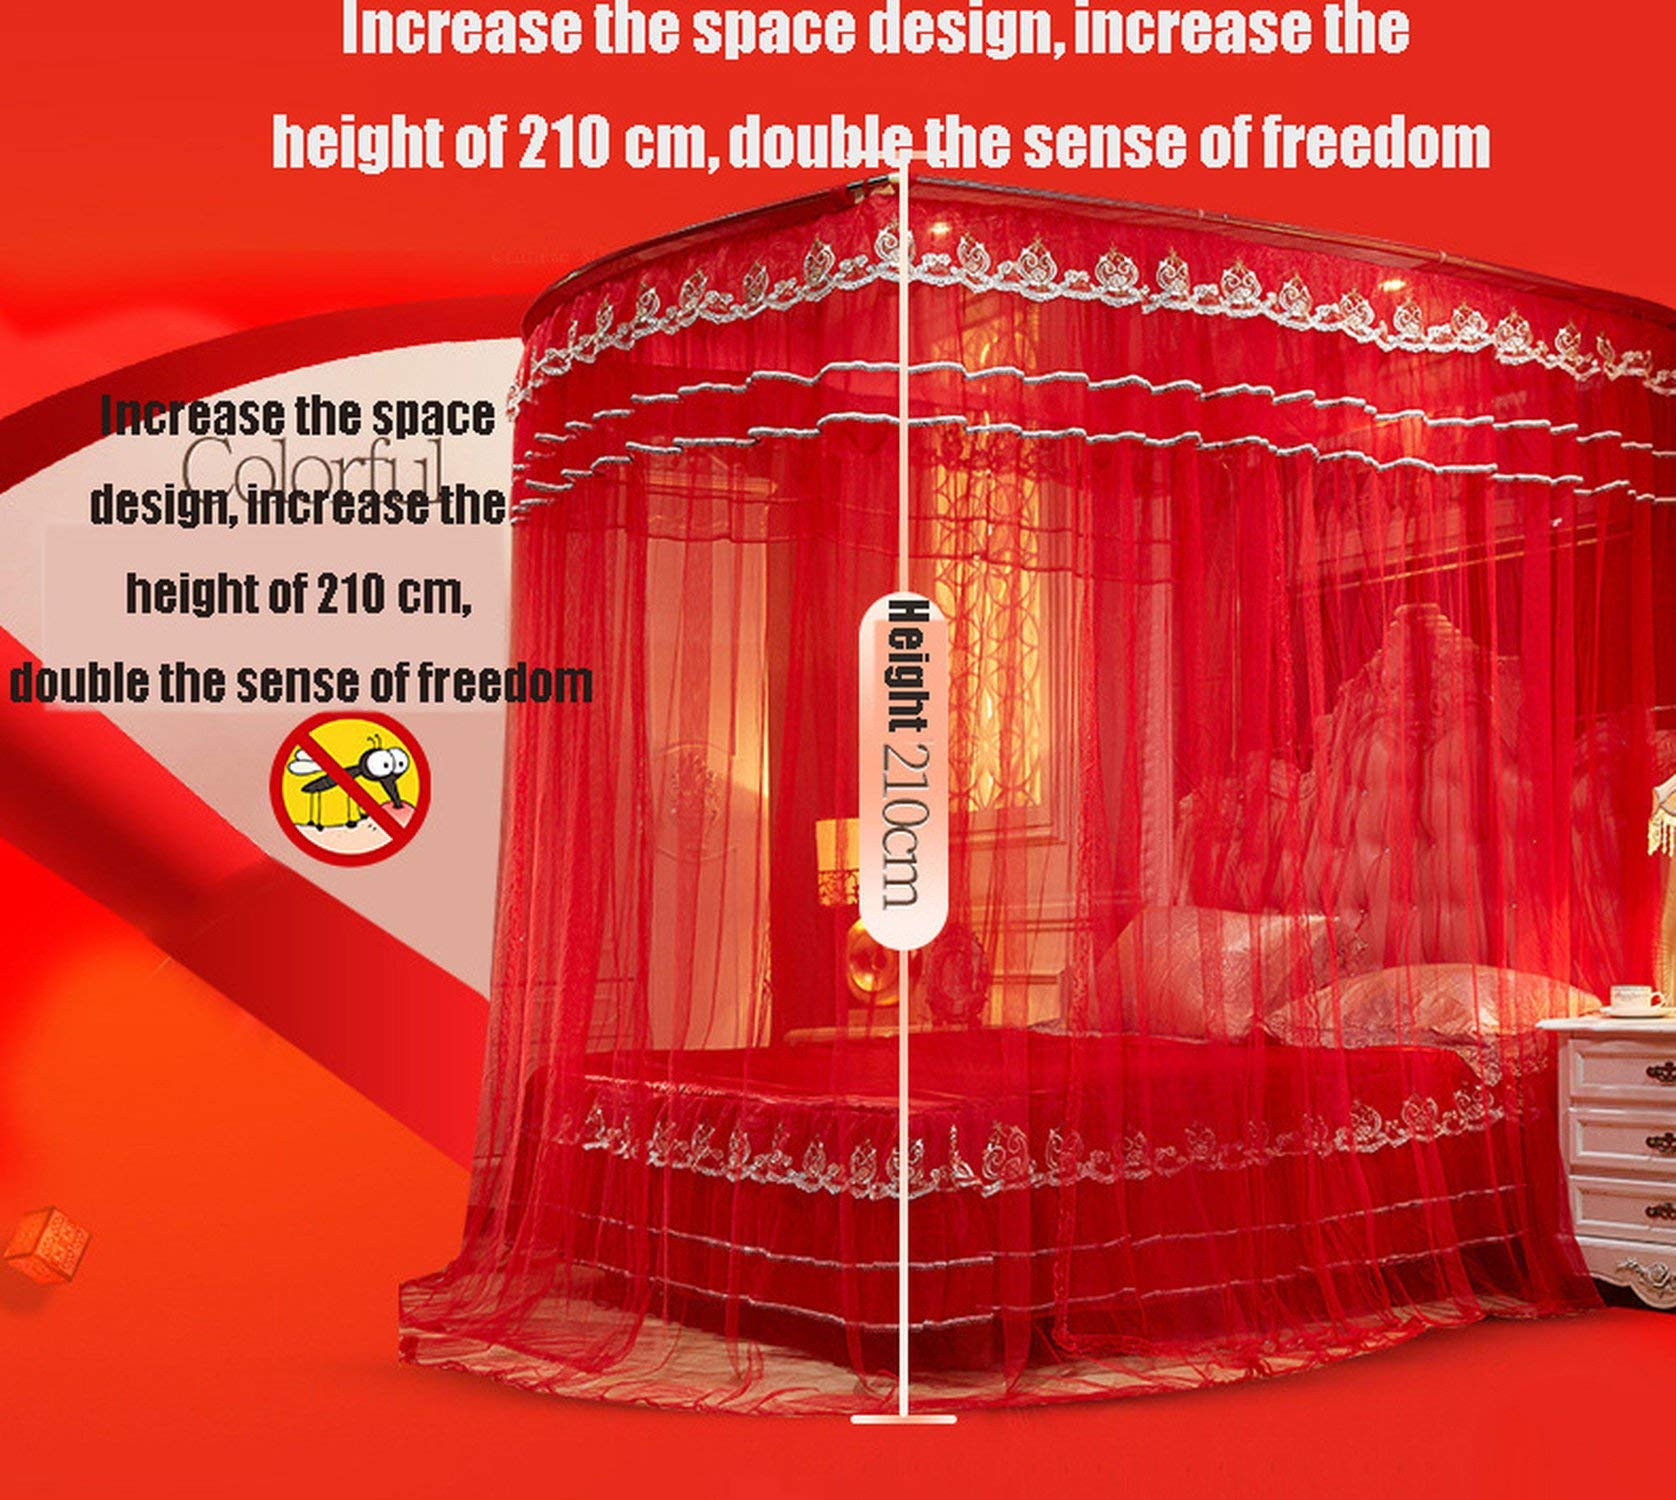 Fishing Rod Retractable Mosquito Net Multi Size Wedding Lace Mosquito Net 50D Encryption Soft Yarn Nice Bed Decor,Red,1.5Mwx2Mlx2.1Mh by special shine-shop mosquito net (Image #6)